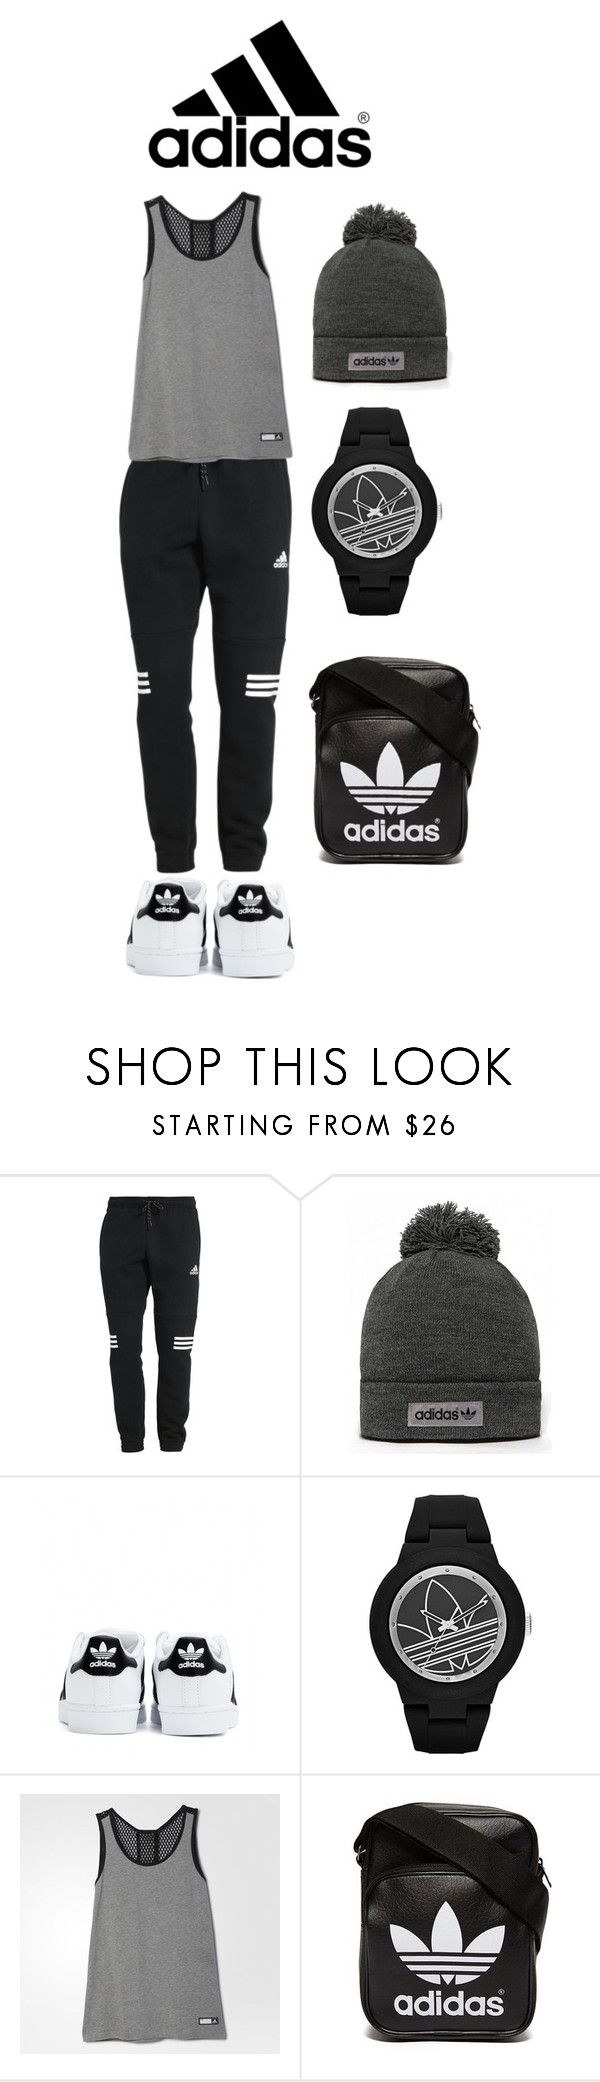 """""""ADIDAS Everything : SPORTY LOOK"""" by bonolon ❤ liked on Polyvore featuring adidas, adidas Originals, women's clothing, women's fashion, women, female, woman, misses, juniors and sporty"""